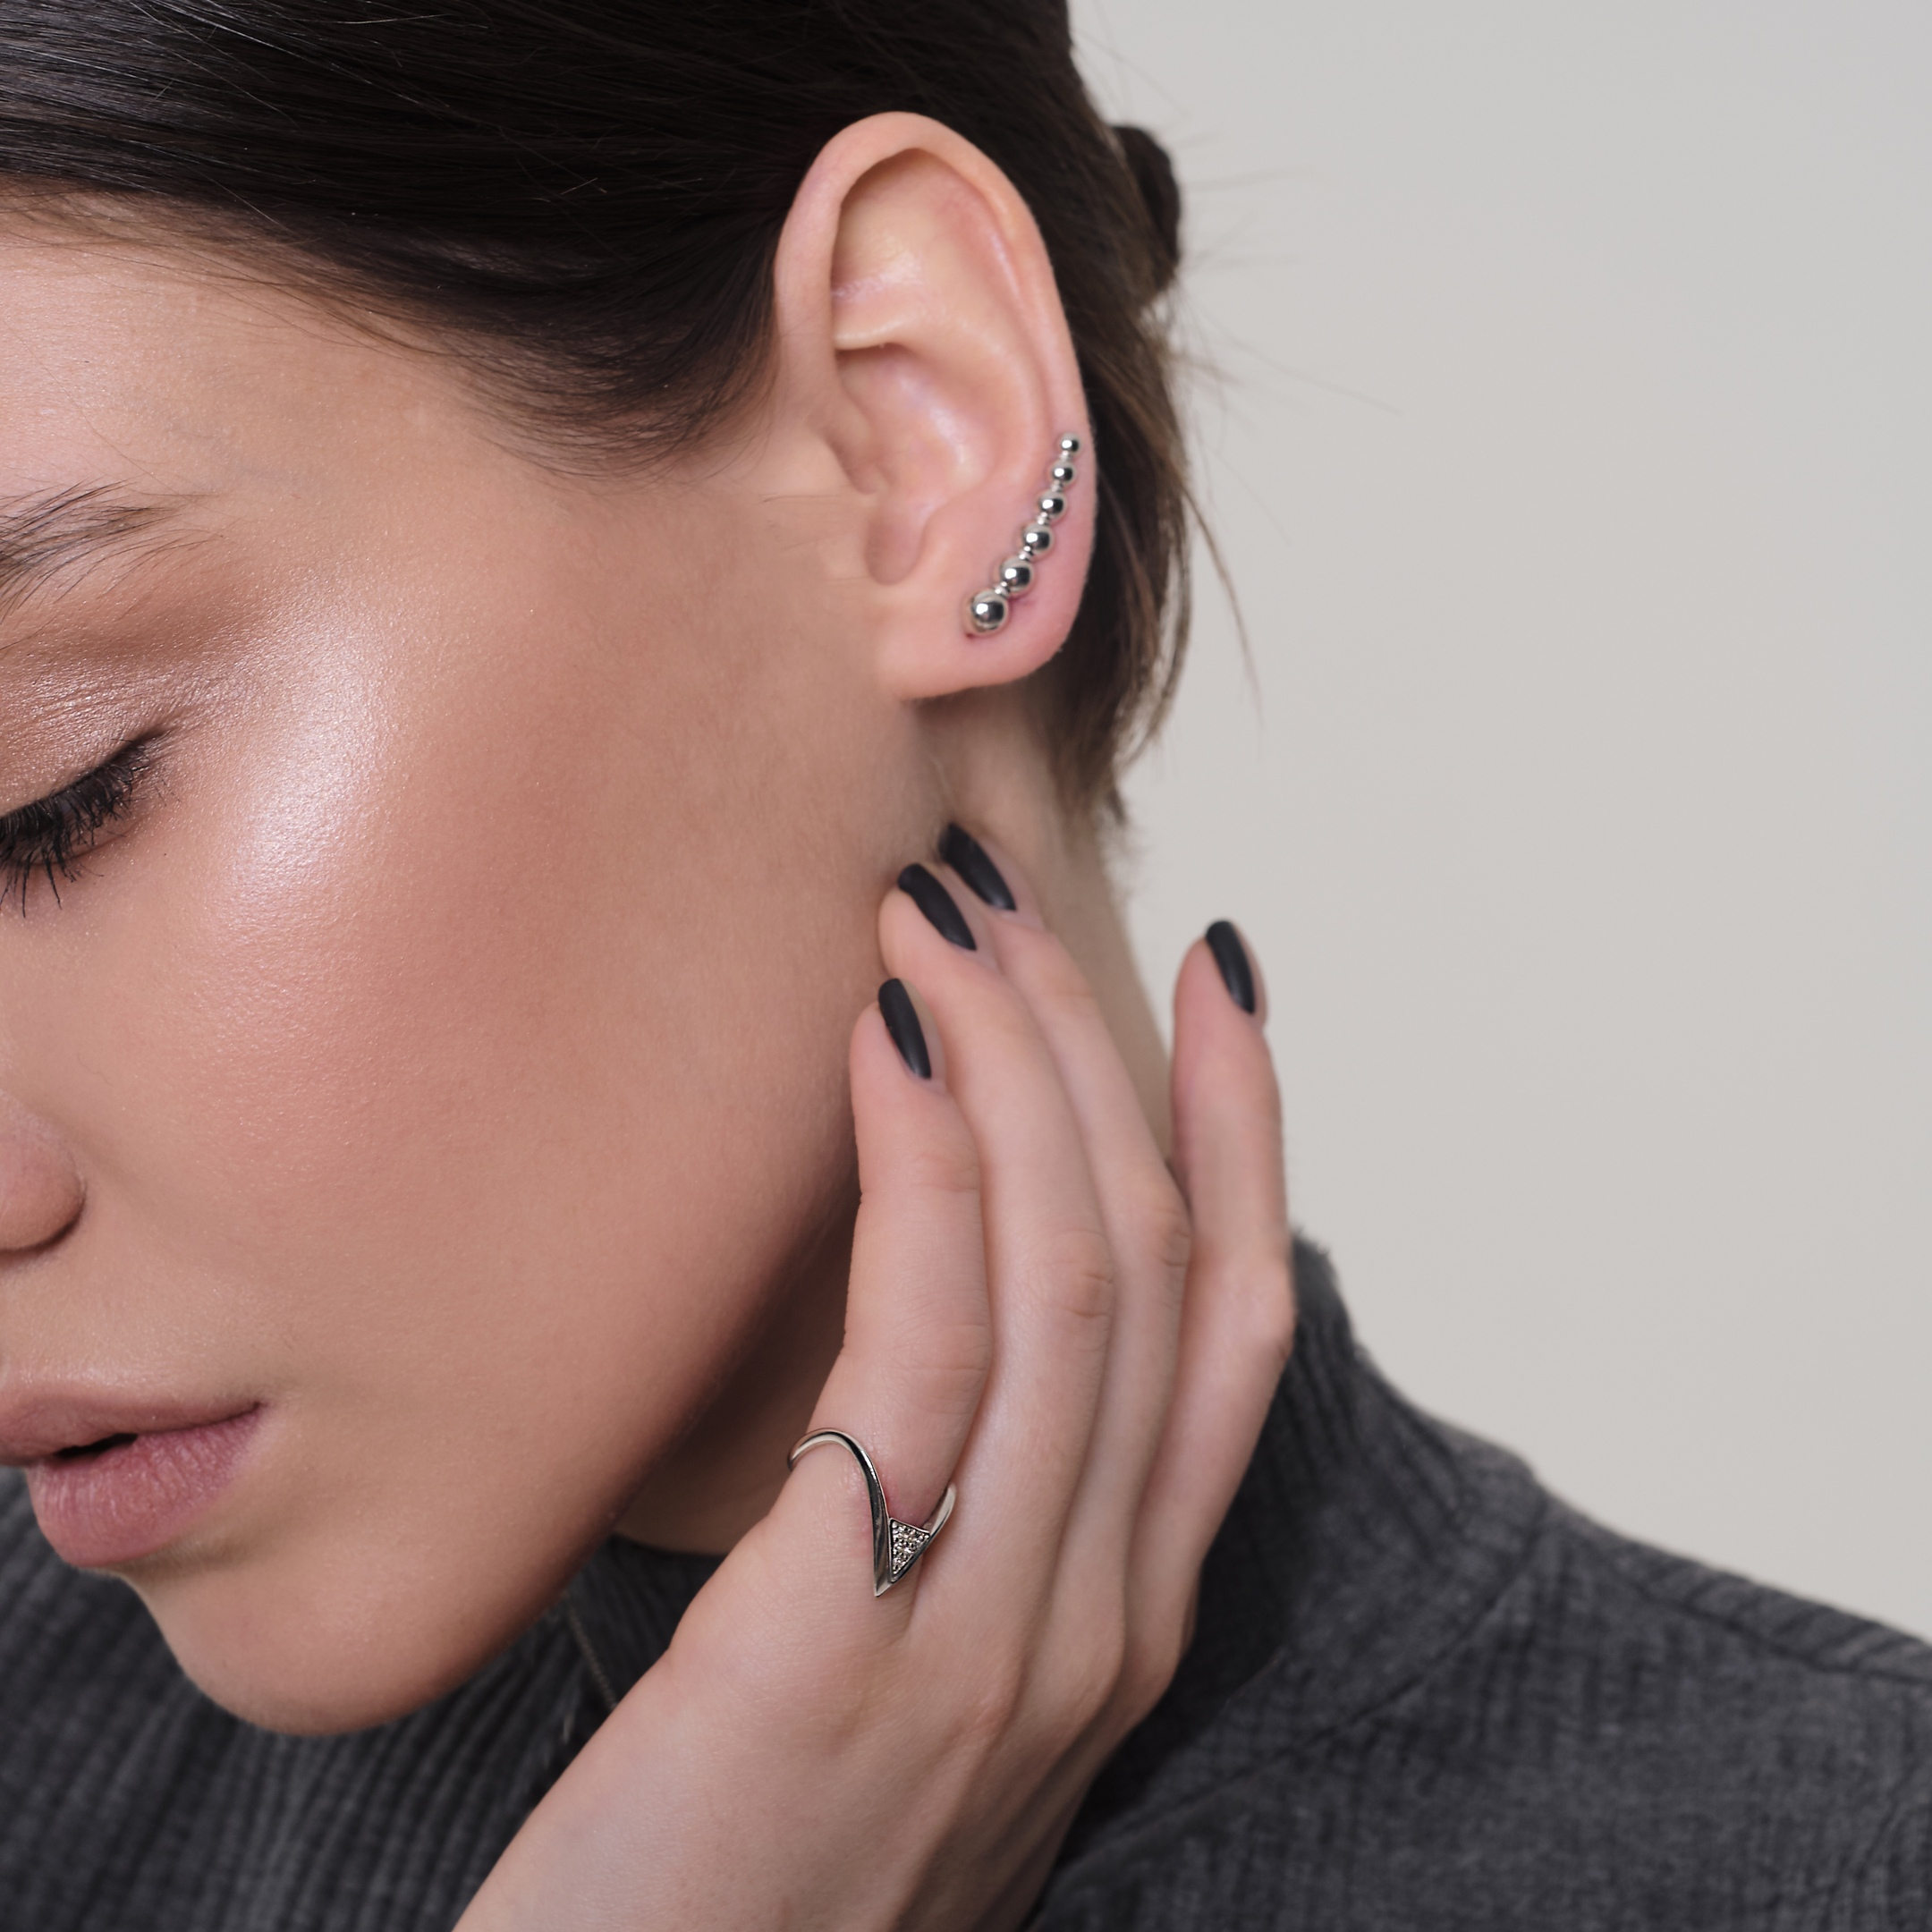 a minimalist silver stud climber earring is a nice accessory for a minimalist look and it will fit many situations